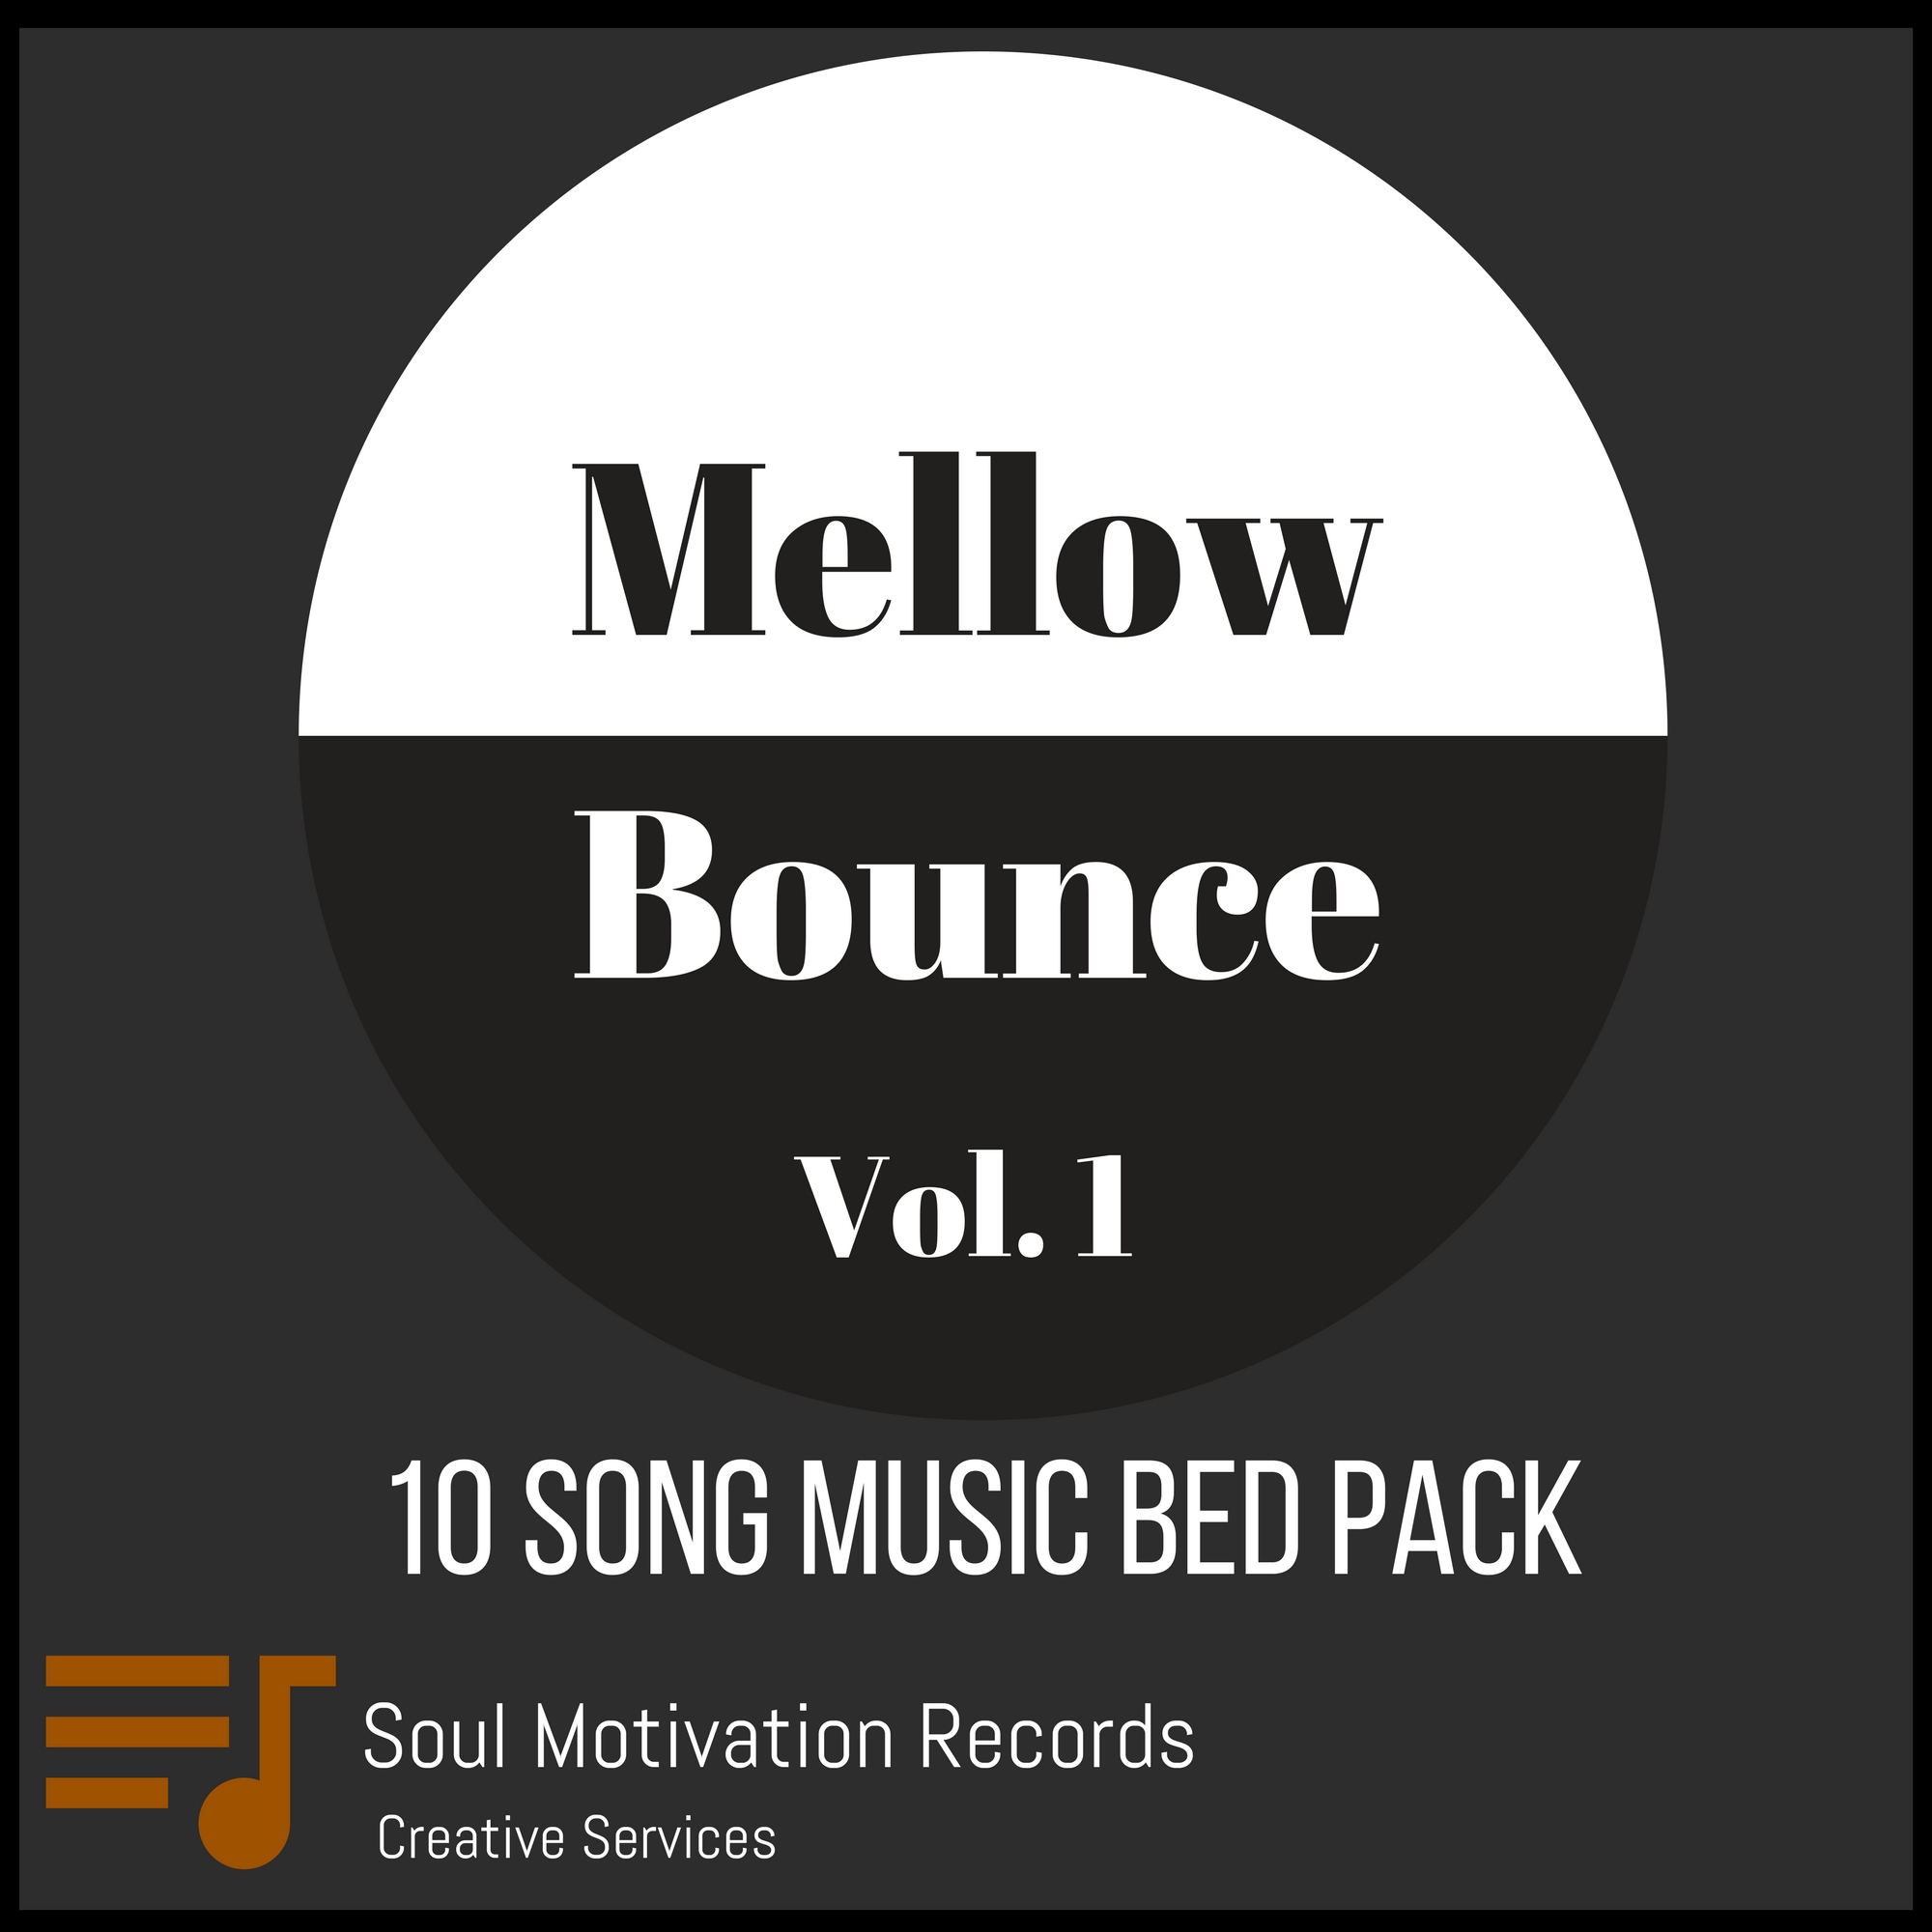 Mellow Bounce Vol. 1 Cover.jpg